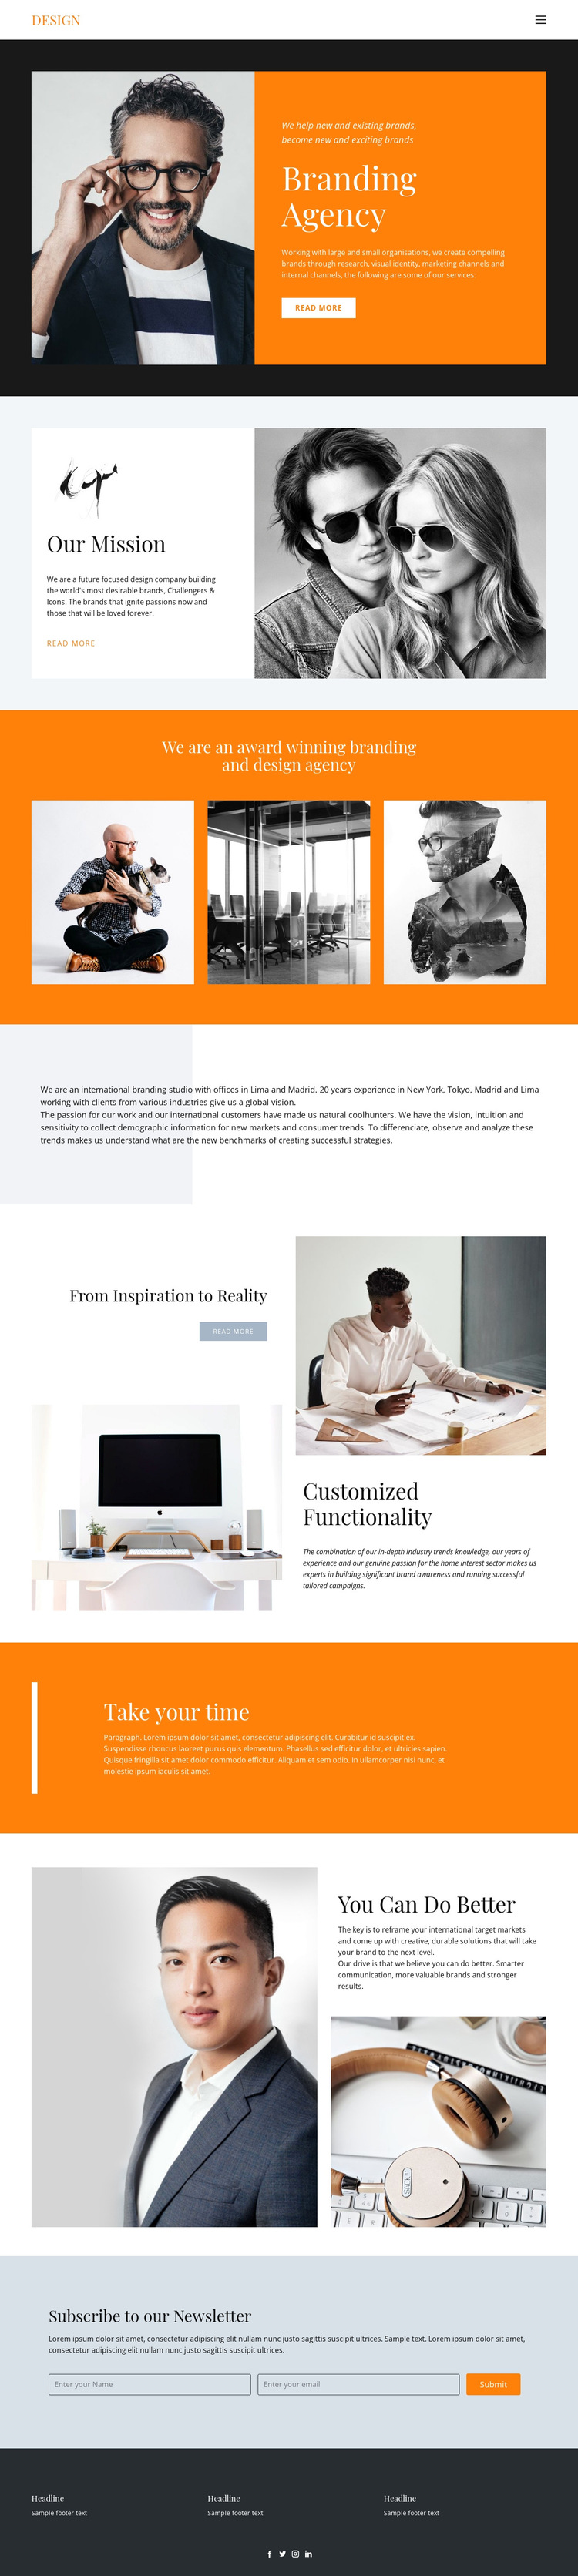 Desired results in business HTML5 Template